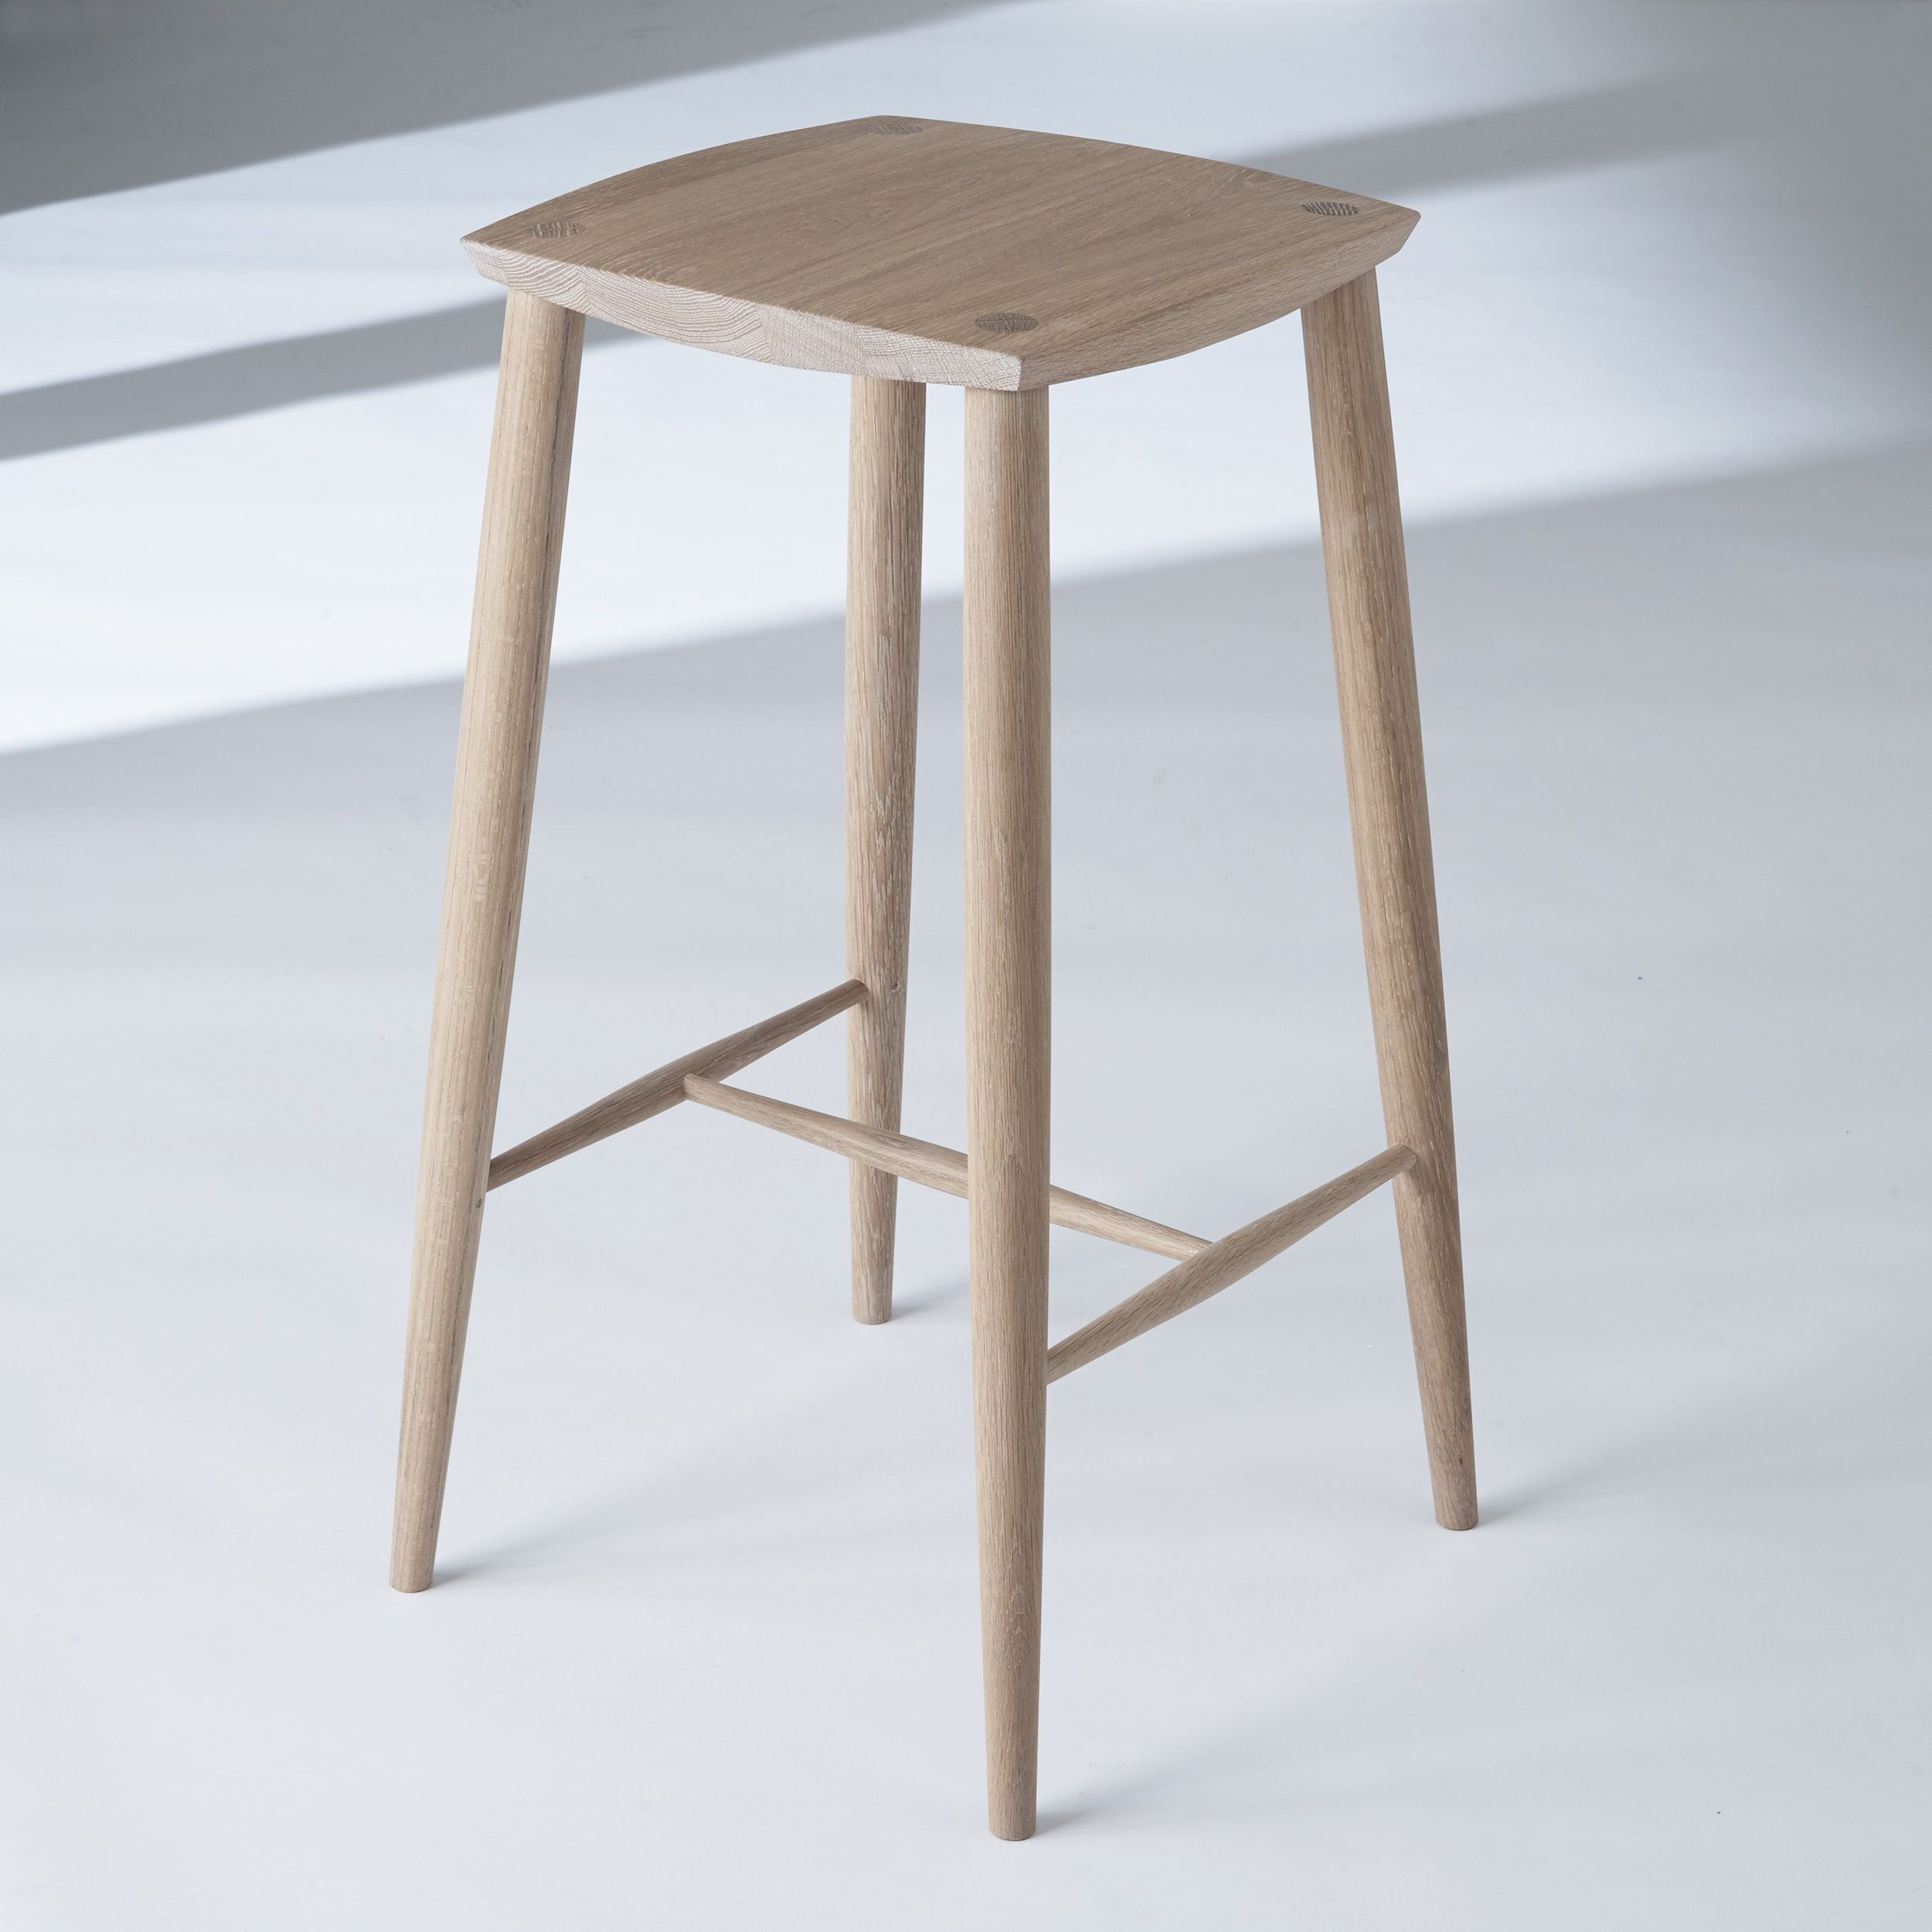 The Palmerston Stool in White Oak Stool, Counter height